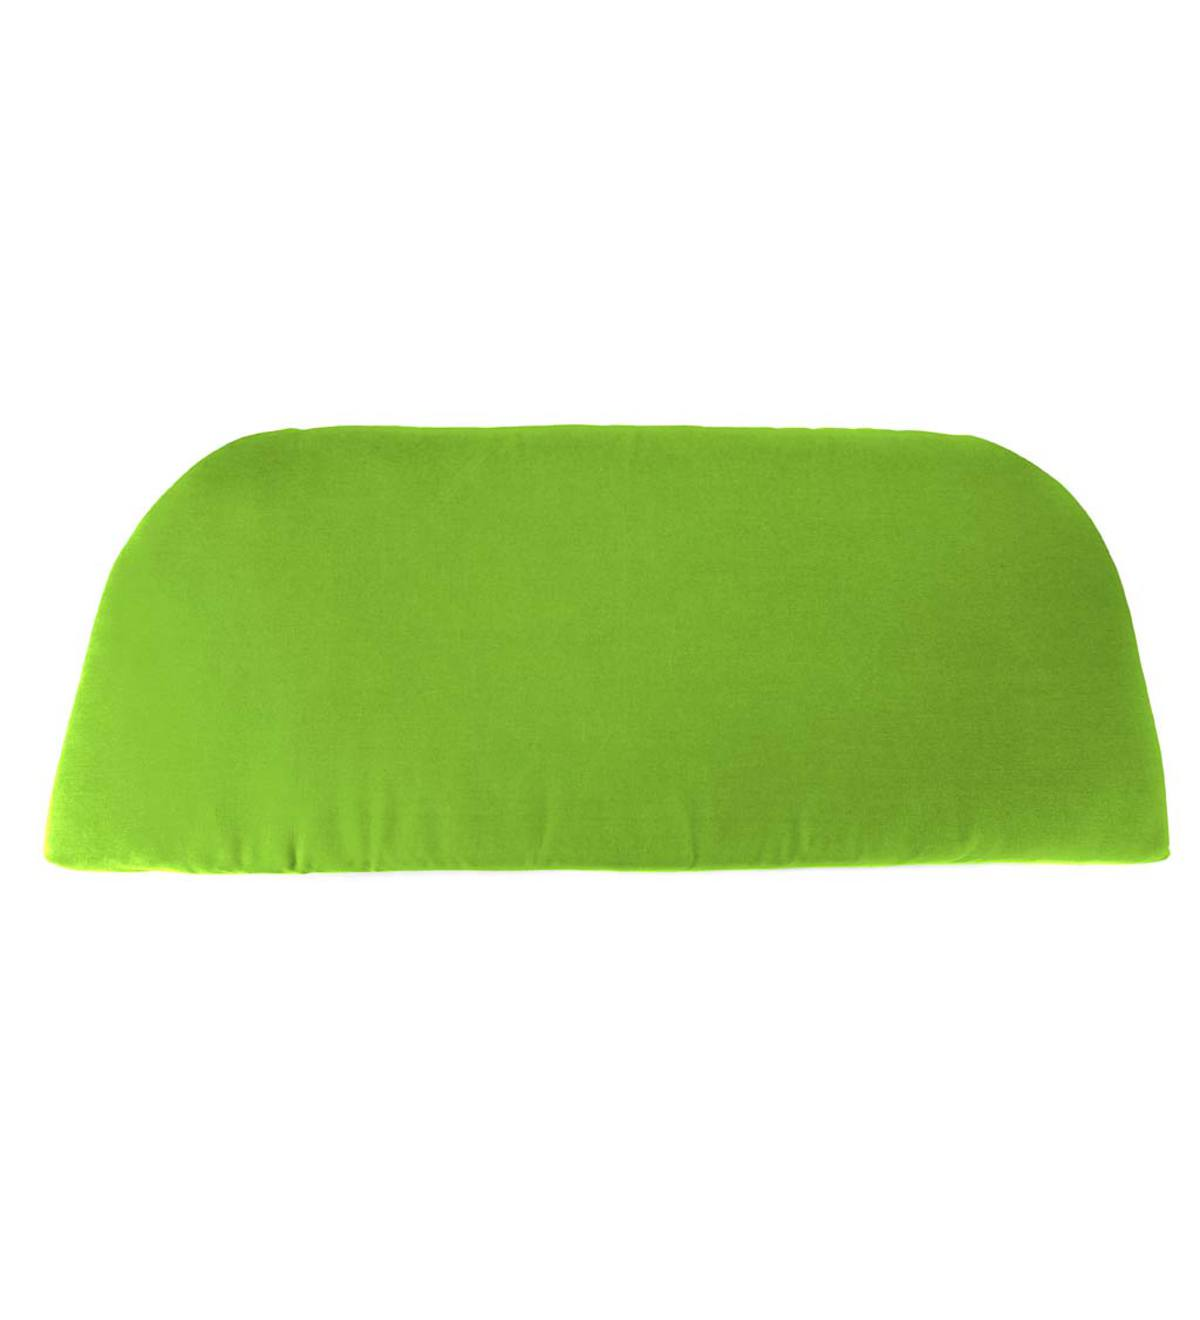 "Polyester Classic Swing/Bench Cushion, 41"" x 18¾"" x 3"""